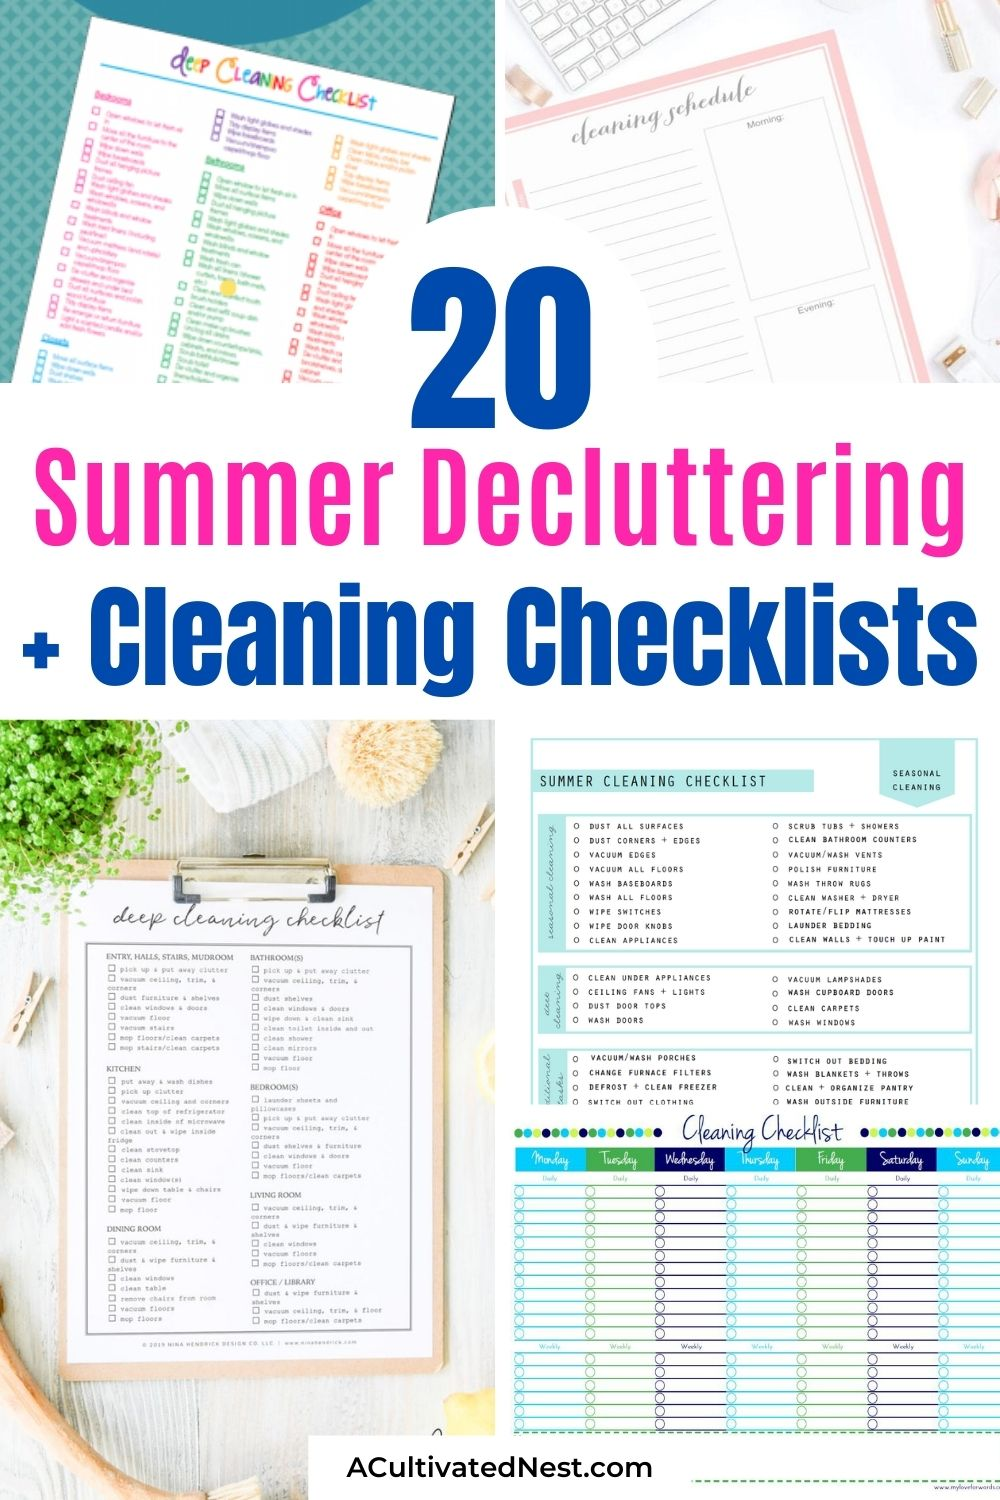 20 Summer Cleaning and Decluttering Checklists- Summer is the perfect time for tidying up your home, and these summer cleaning and decluttering checklists will help a lot! Many are also free printables, for even easier use! | #freePrintable #summerCleaning #declutteringSchedule #cleaningCleaning #ACultivatedNest